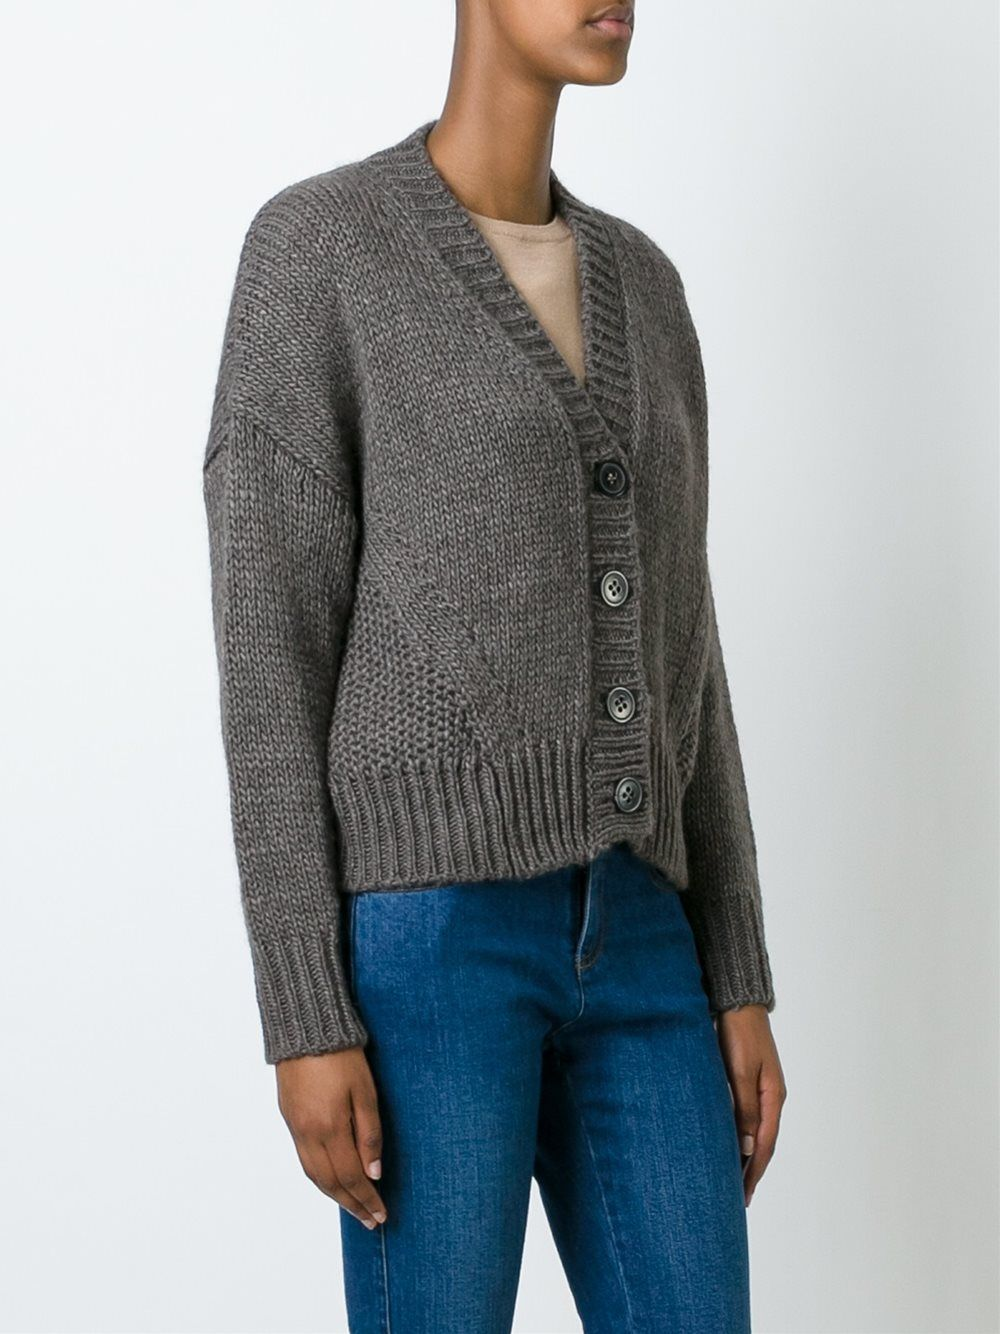 Roberto Collina cropped cardigan | knits | Pinterest | Cardigans ...